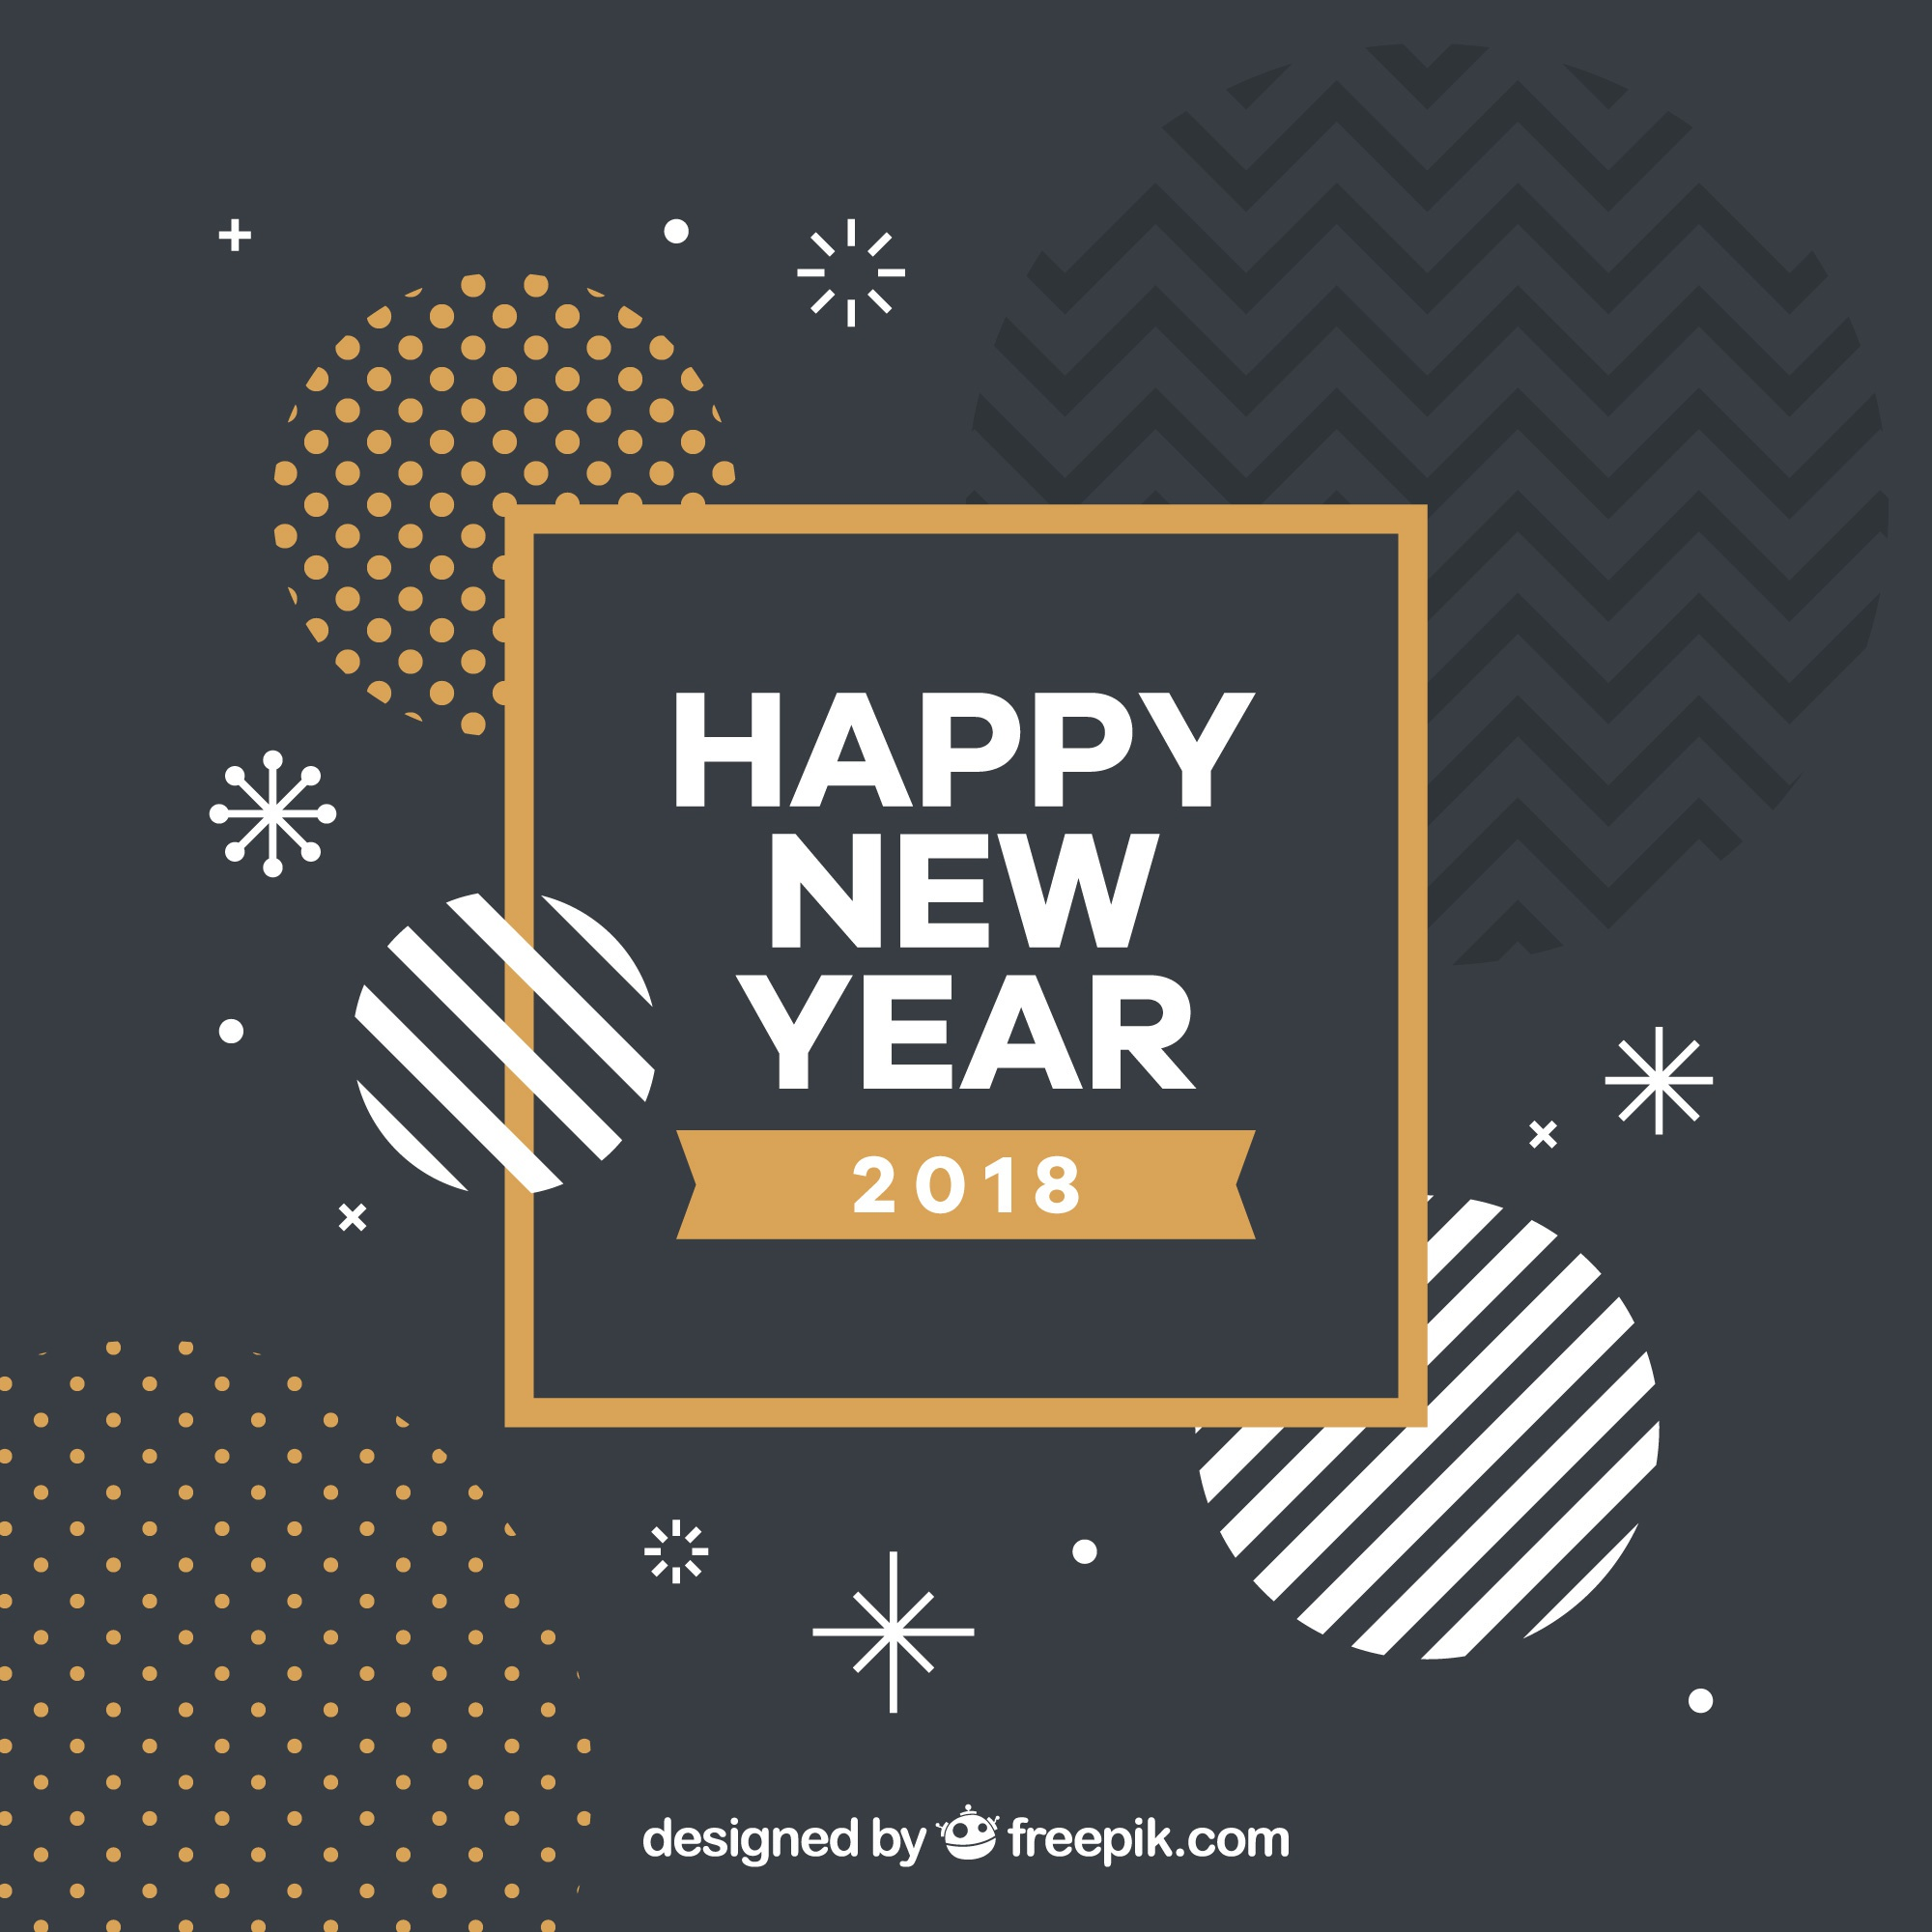 Abstract new year shapes background